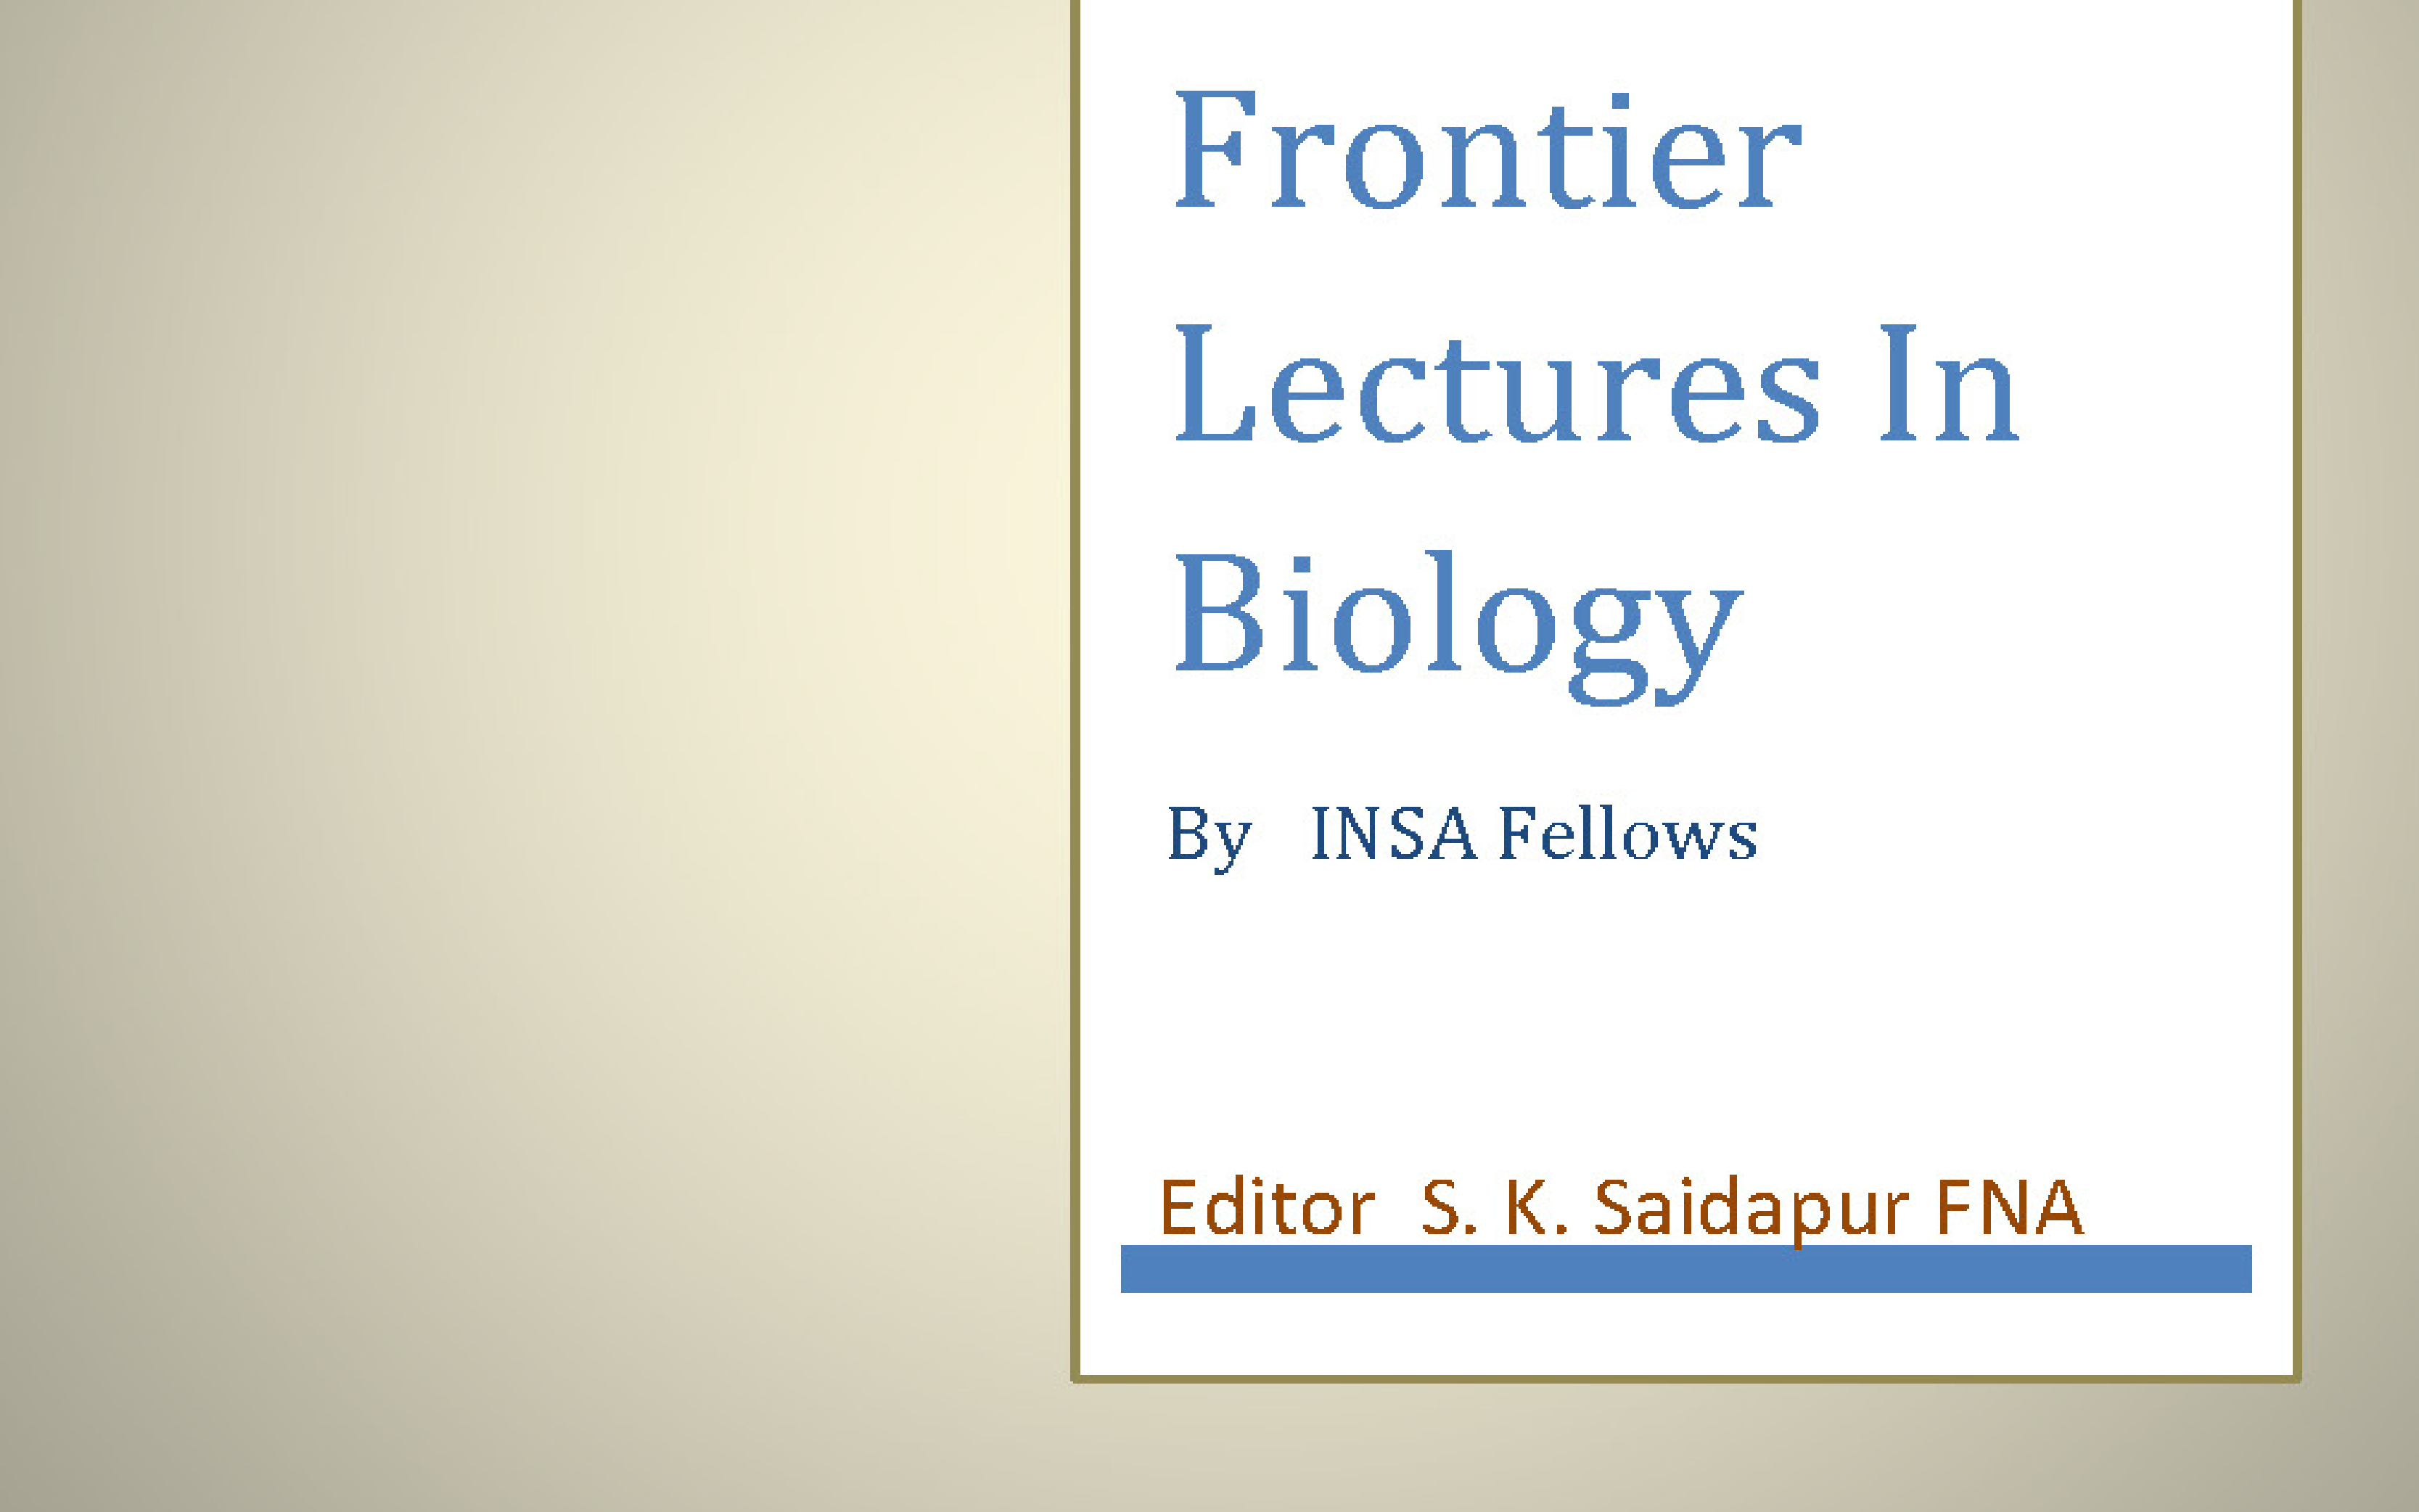 Frontier Lectures In Biology Cover